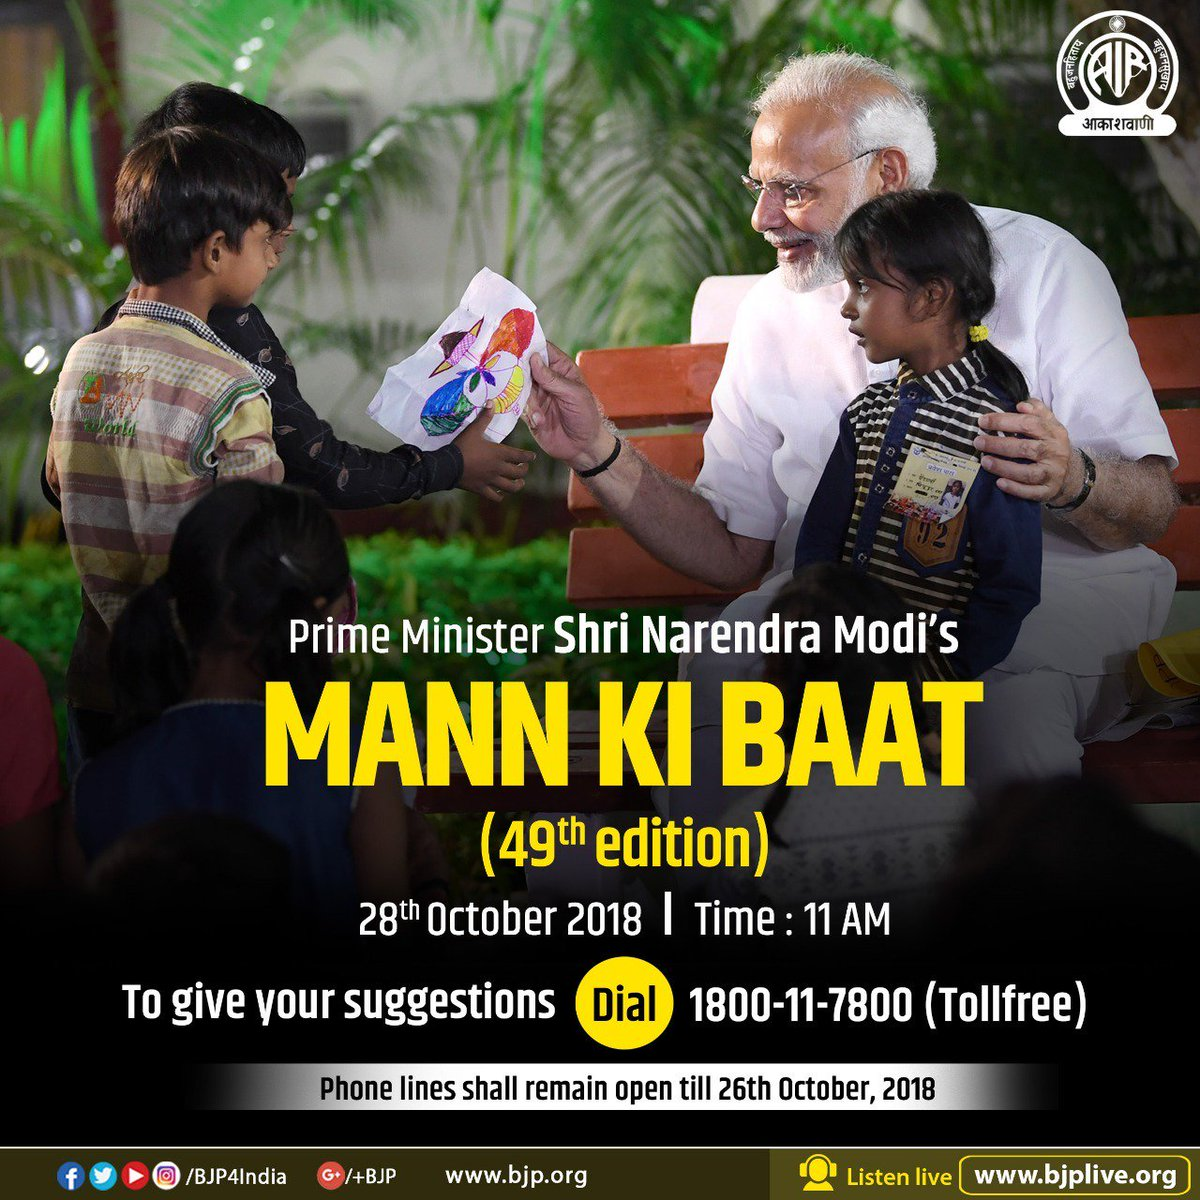 Dial 1800117800 to share your ideas and suggestions for 49th edition of PM Shri @narendramodi's #MannKiBaat on 28 October 2018. You can also share your inputs at https://t.co/jjrmHTtACd